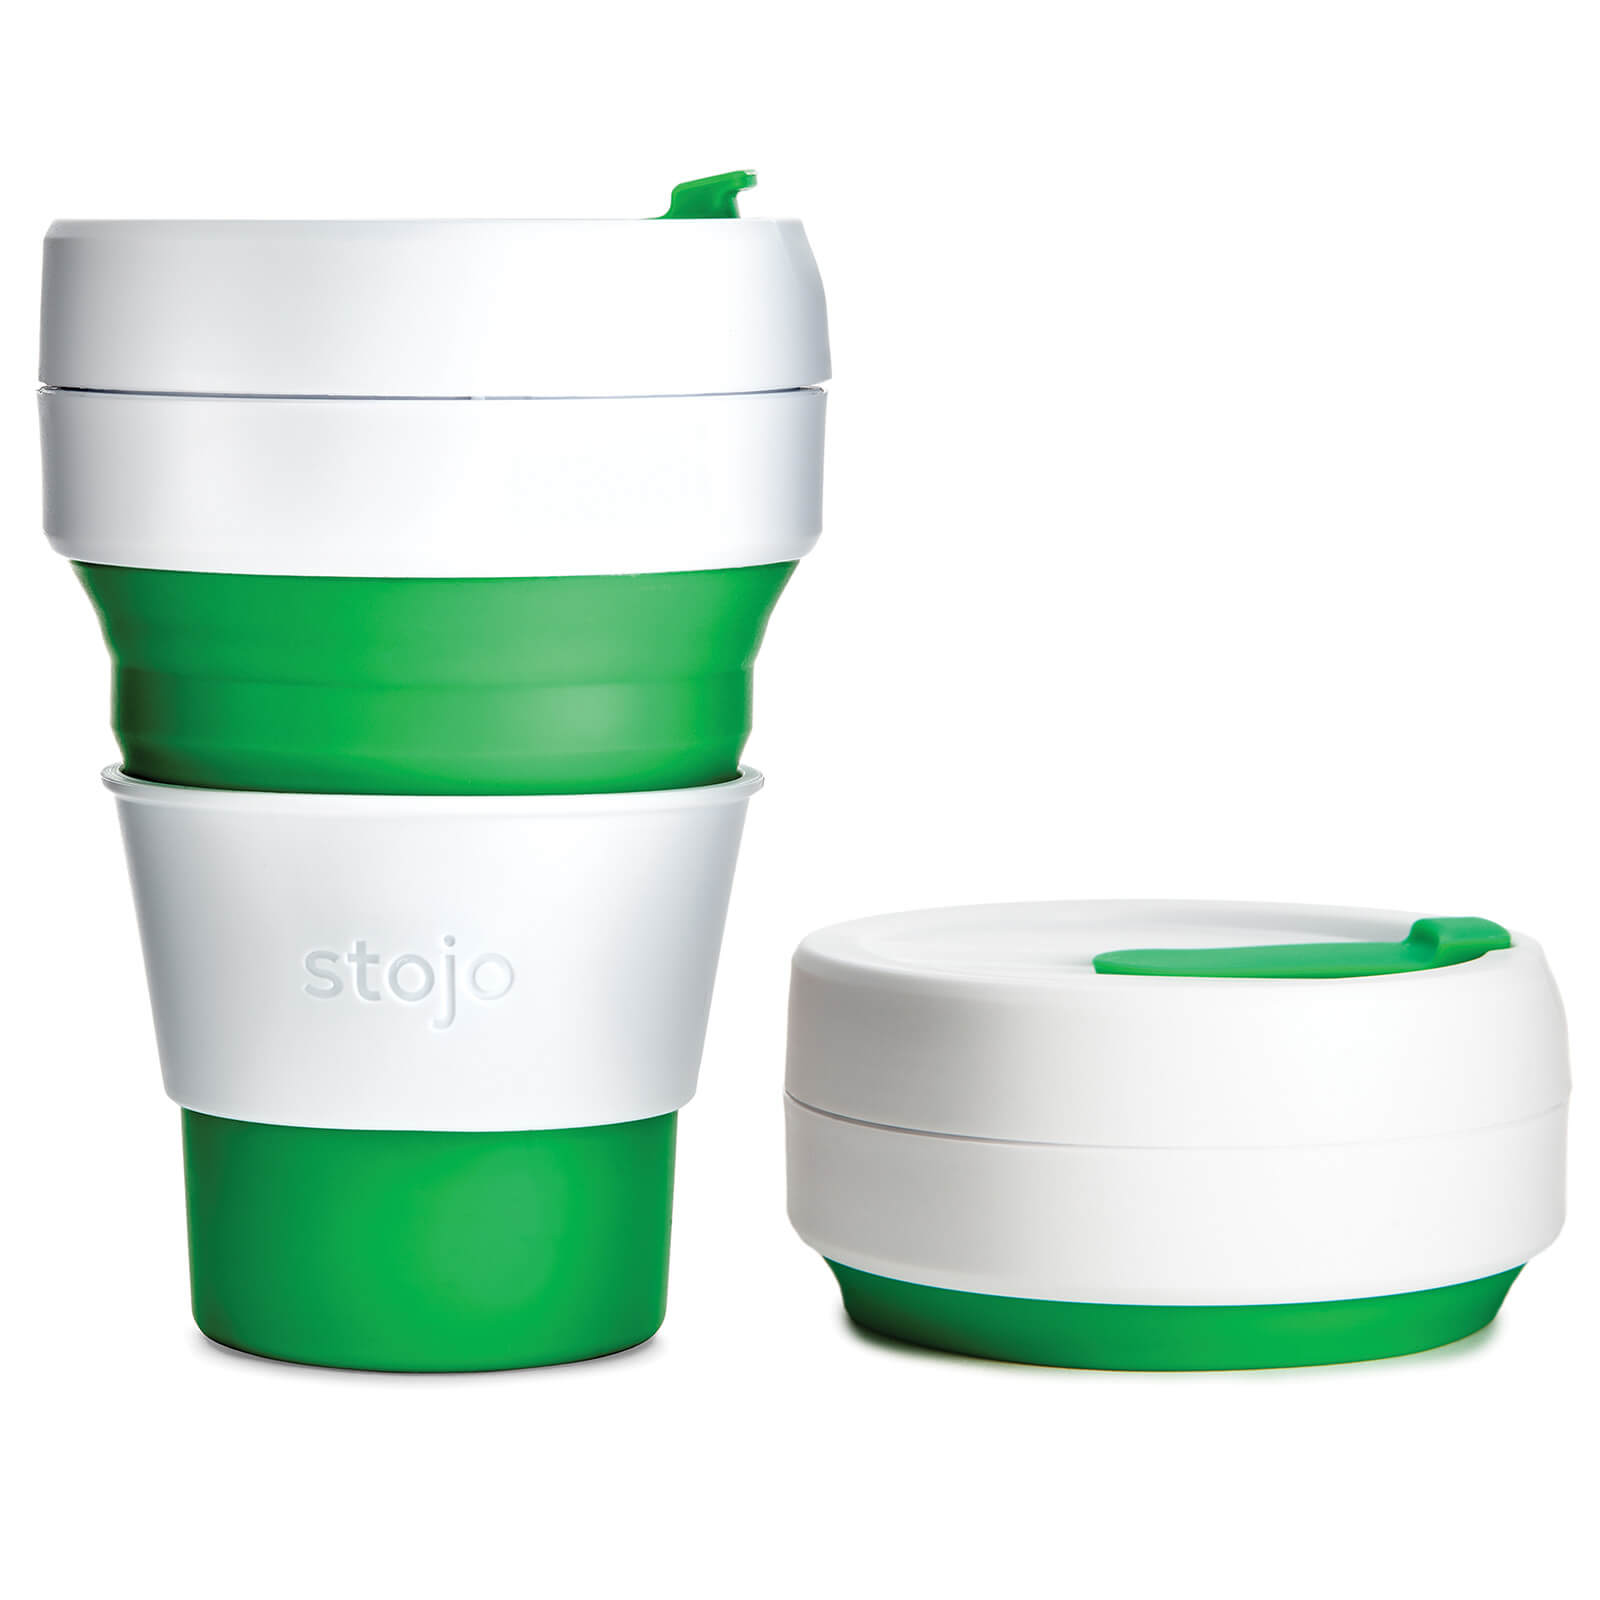 Stojo Collapsible Pocket Cup - Green 355ml